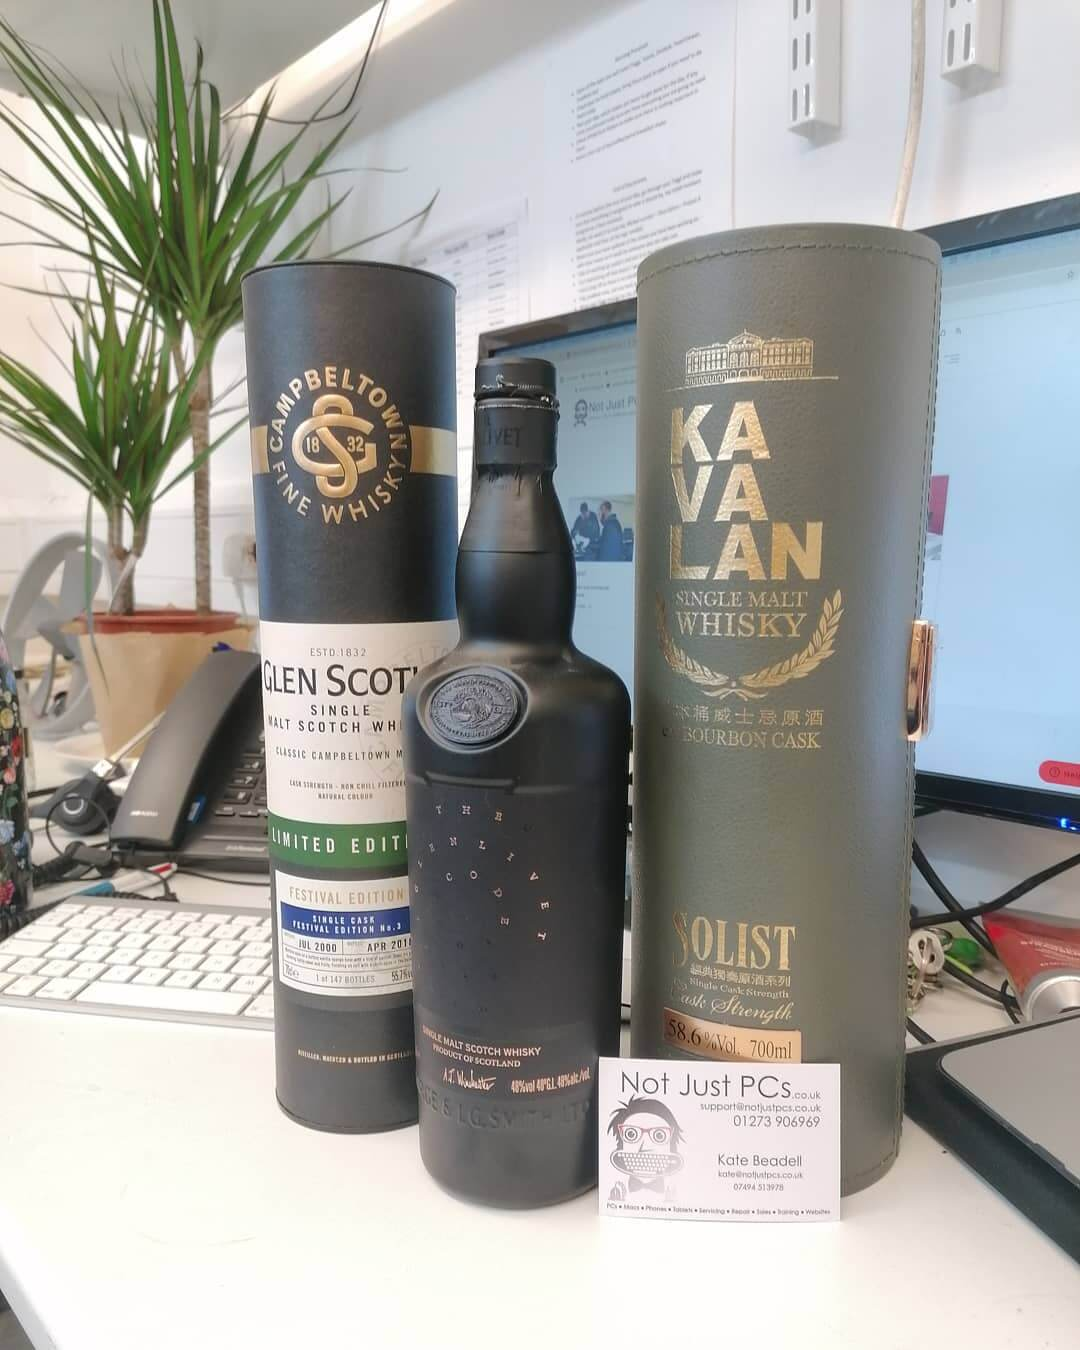 Always appreciated when we are gifted some lovely whisky at njpc